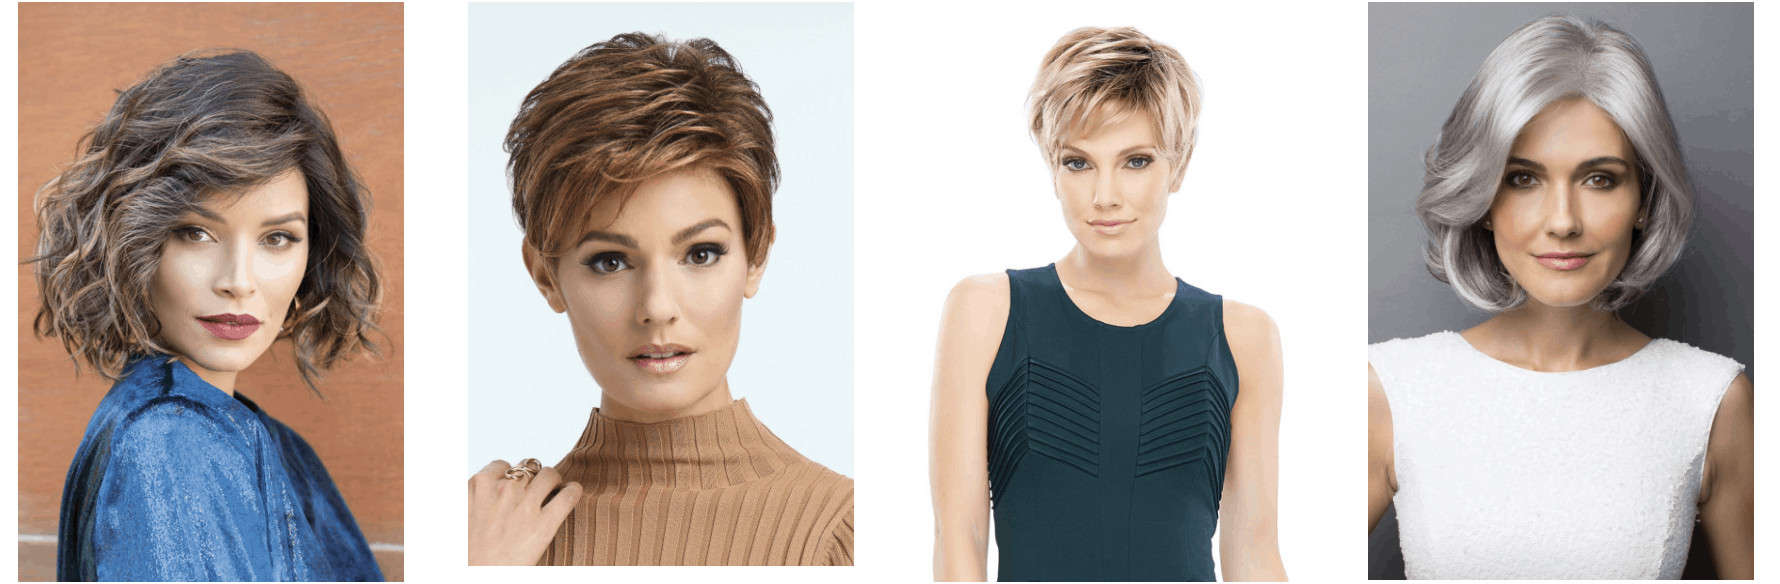 Short Wig Examples